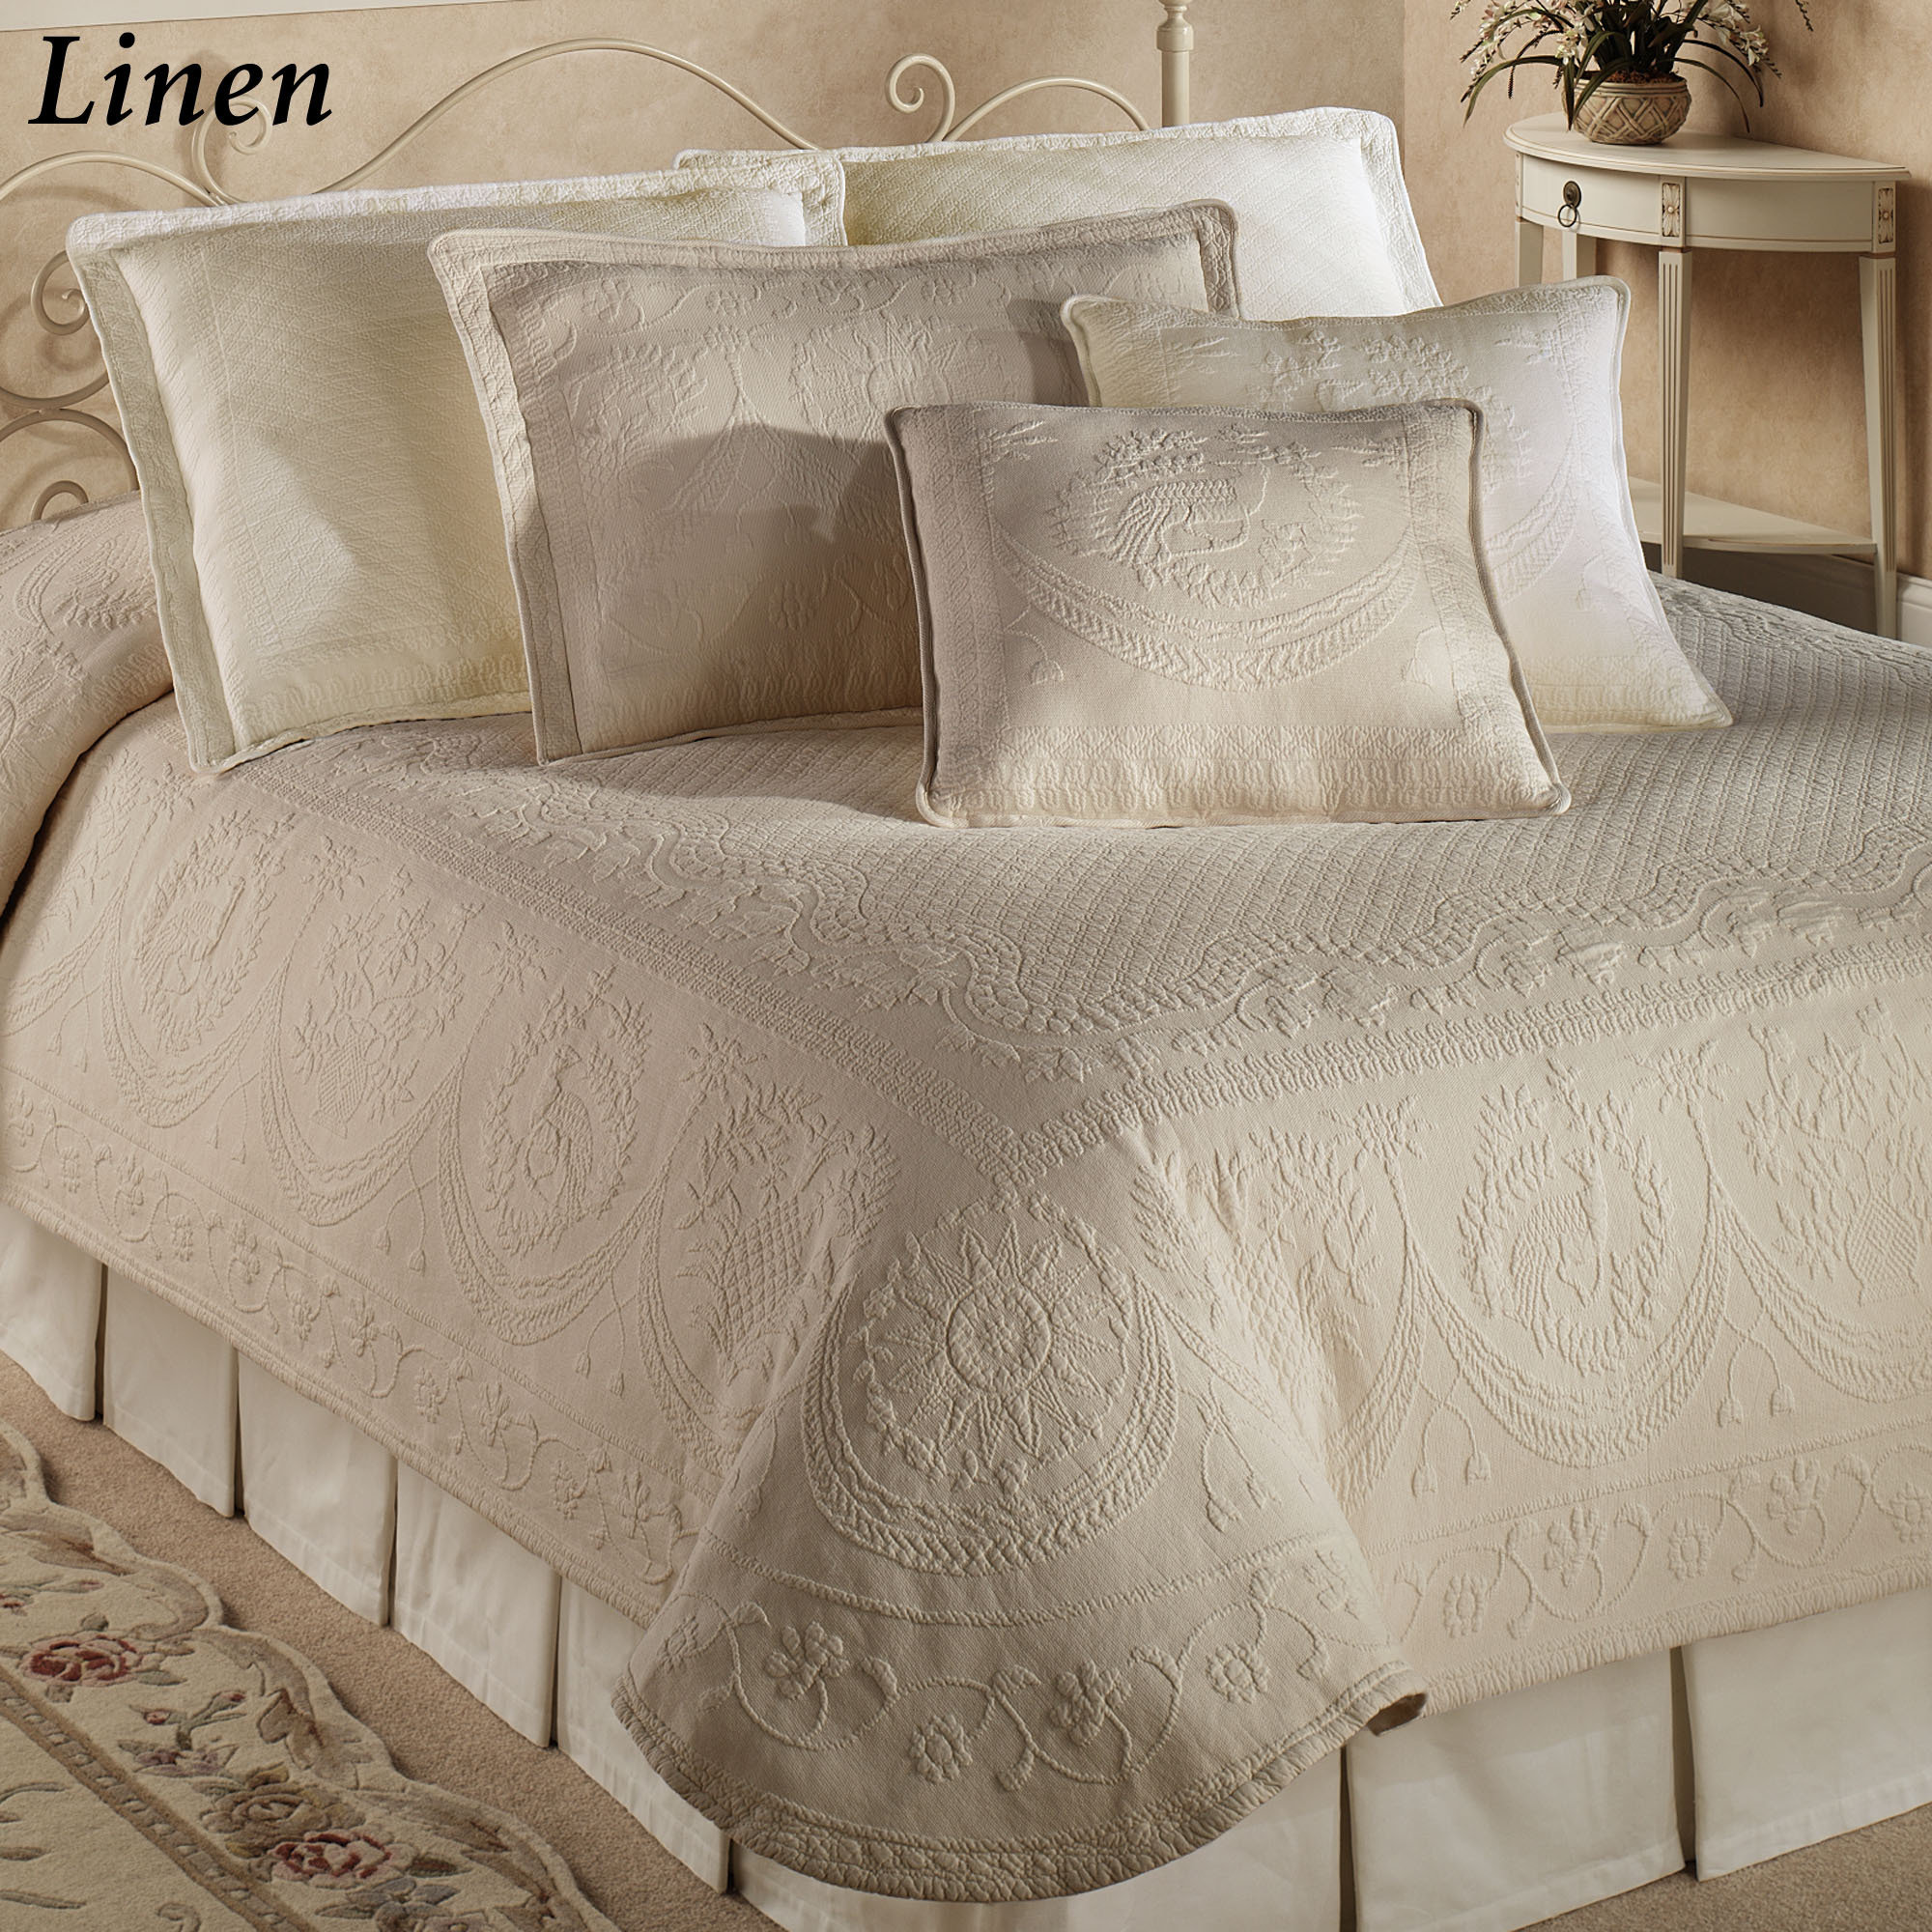 Awesome matelasse for bedroom ideas with matelasse bedding